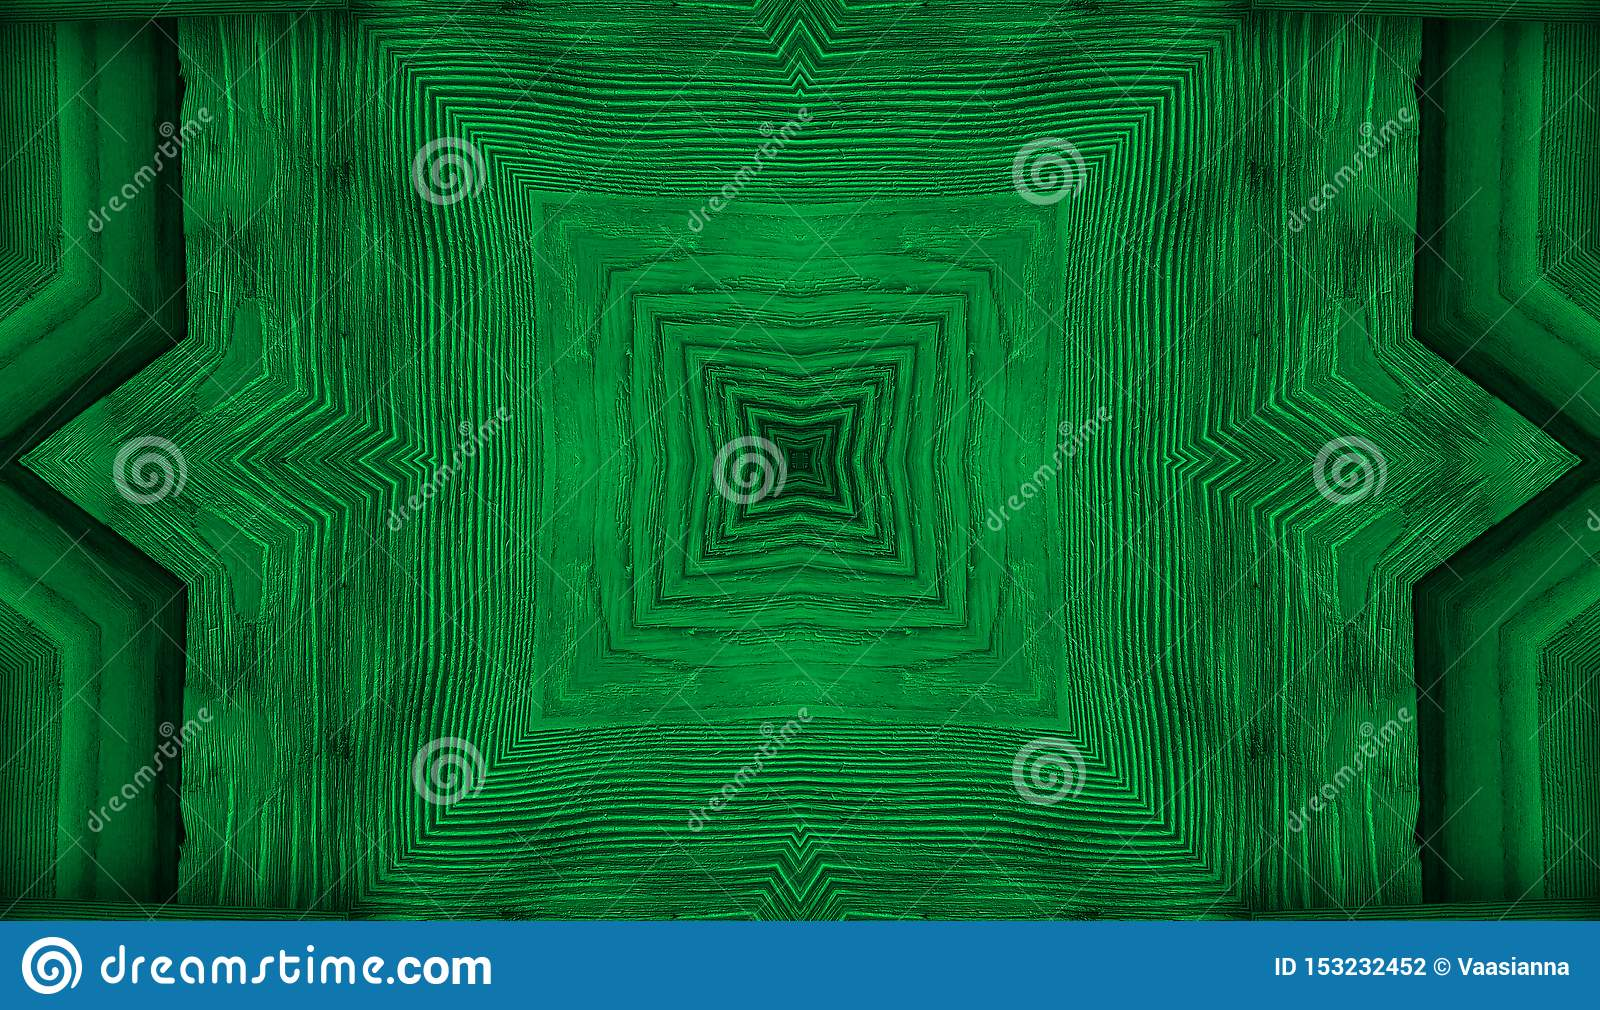 Kaleidoscope. green background fractal mandala, reminding leafs or wooden texture geometrical ornament floral pattern